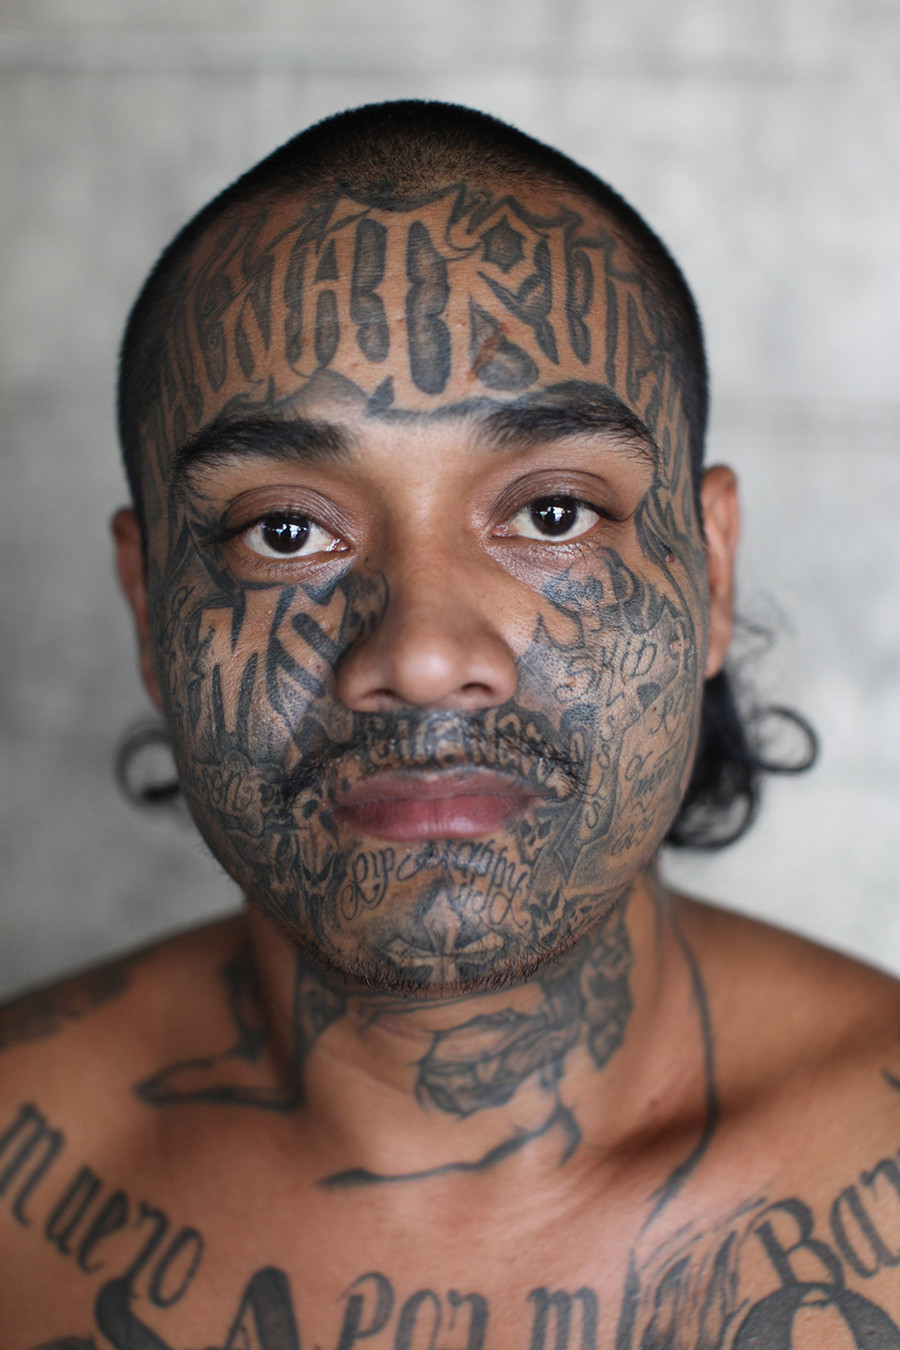 Is there institutions for gang members to get out the gang?